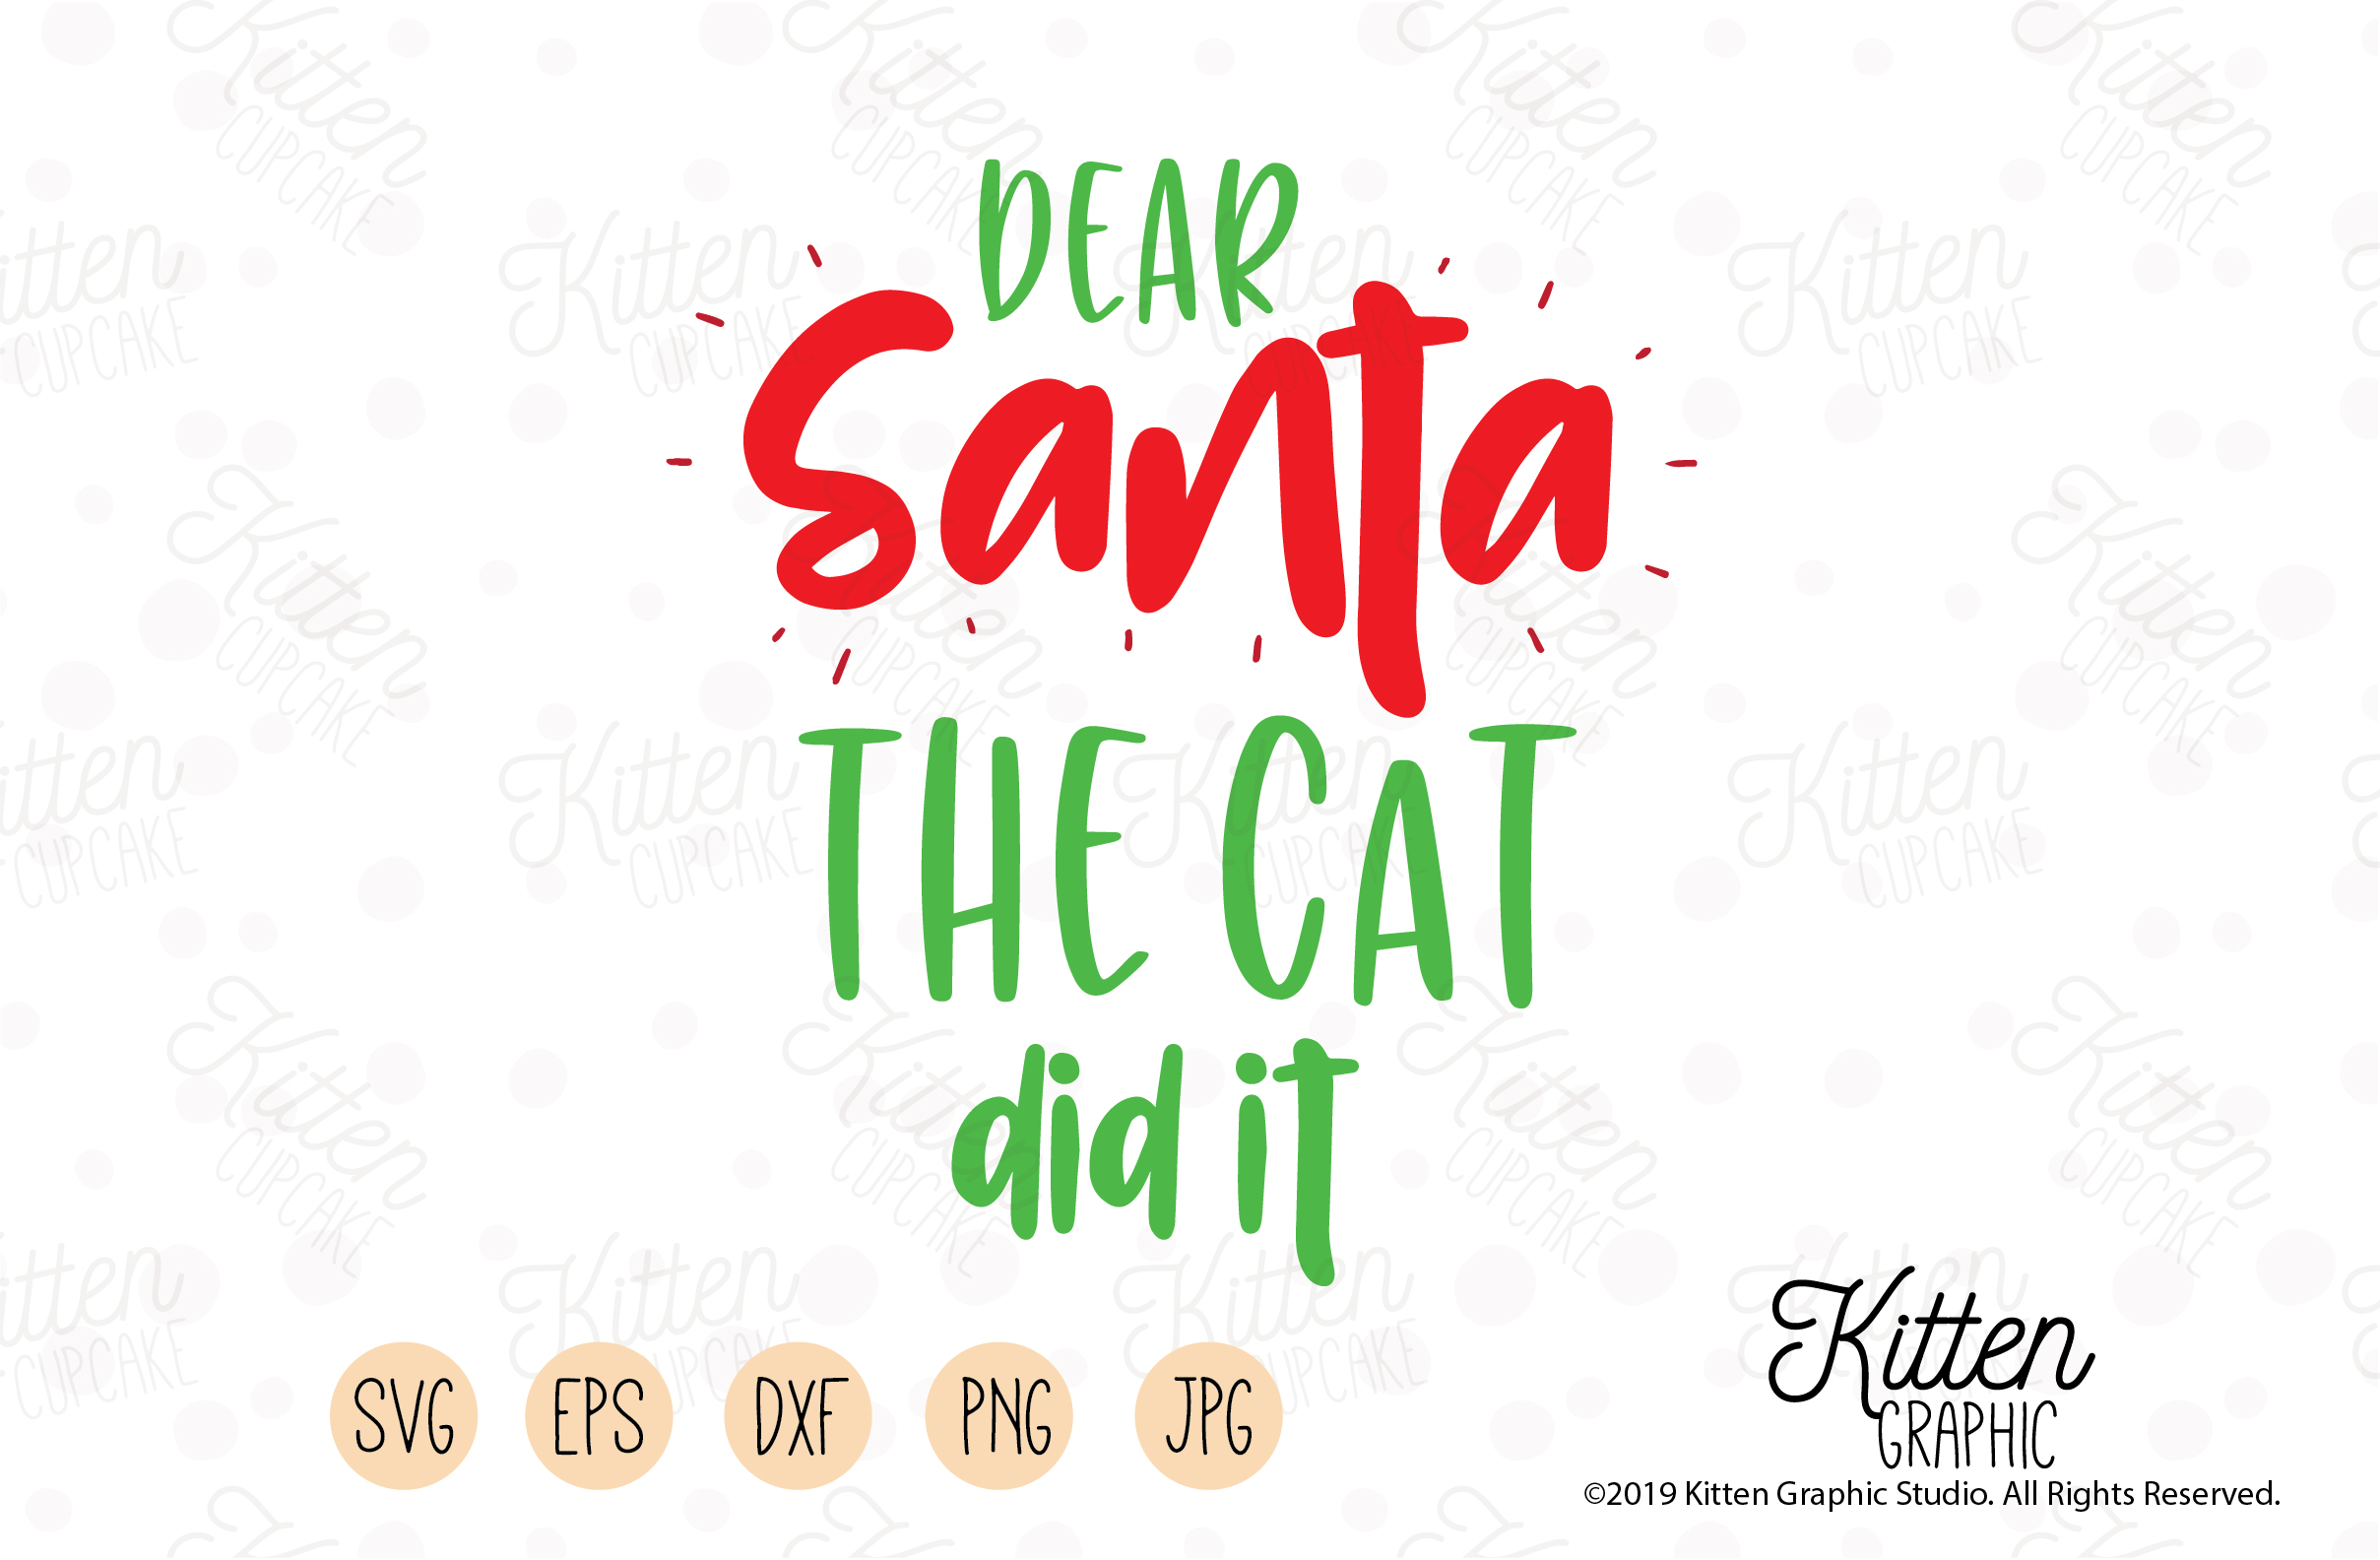 Download Free Dear Santa The Cat Did It Graphic By Kittengraphicstudio for Cricut Explore, Silhouette and other cutting machines.